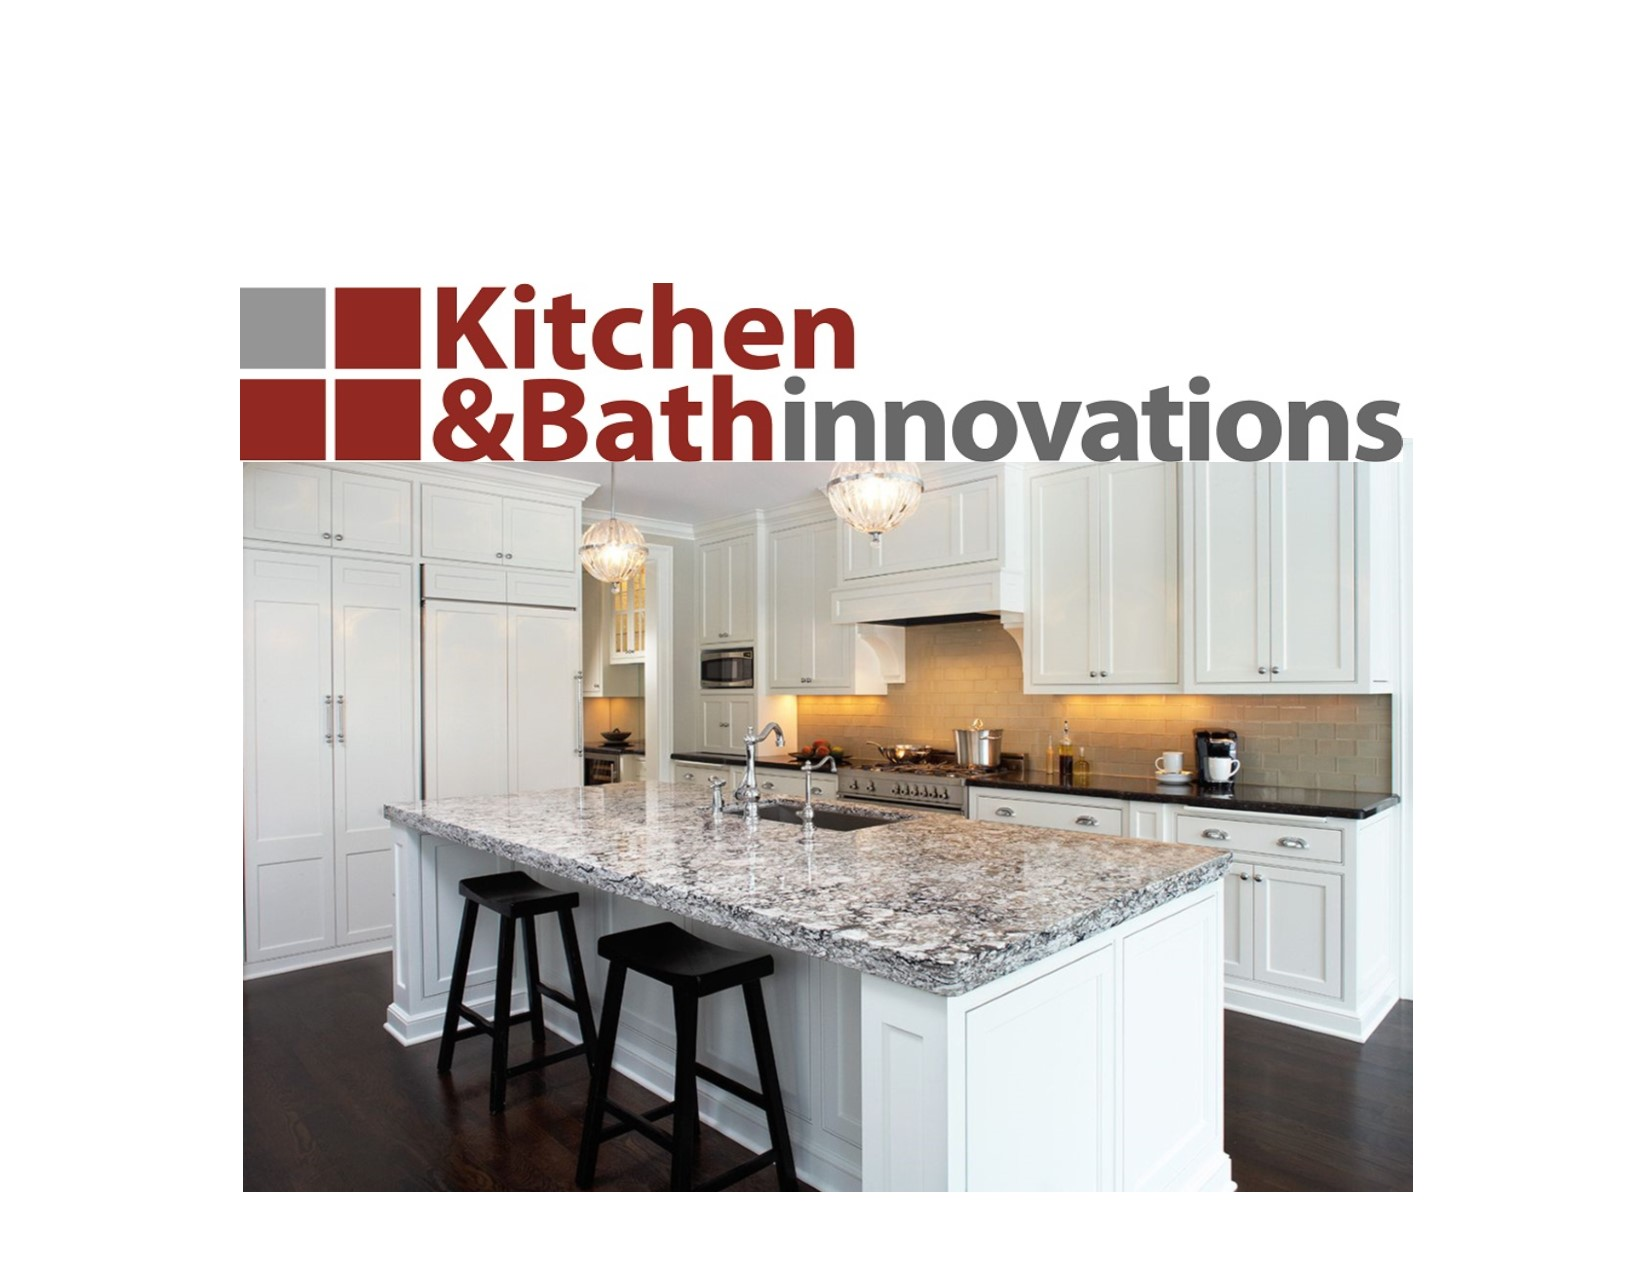 Cincinnati Kitchens Remodeling Deans Kitchen Concepts design cabinets.jpg